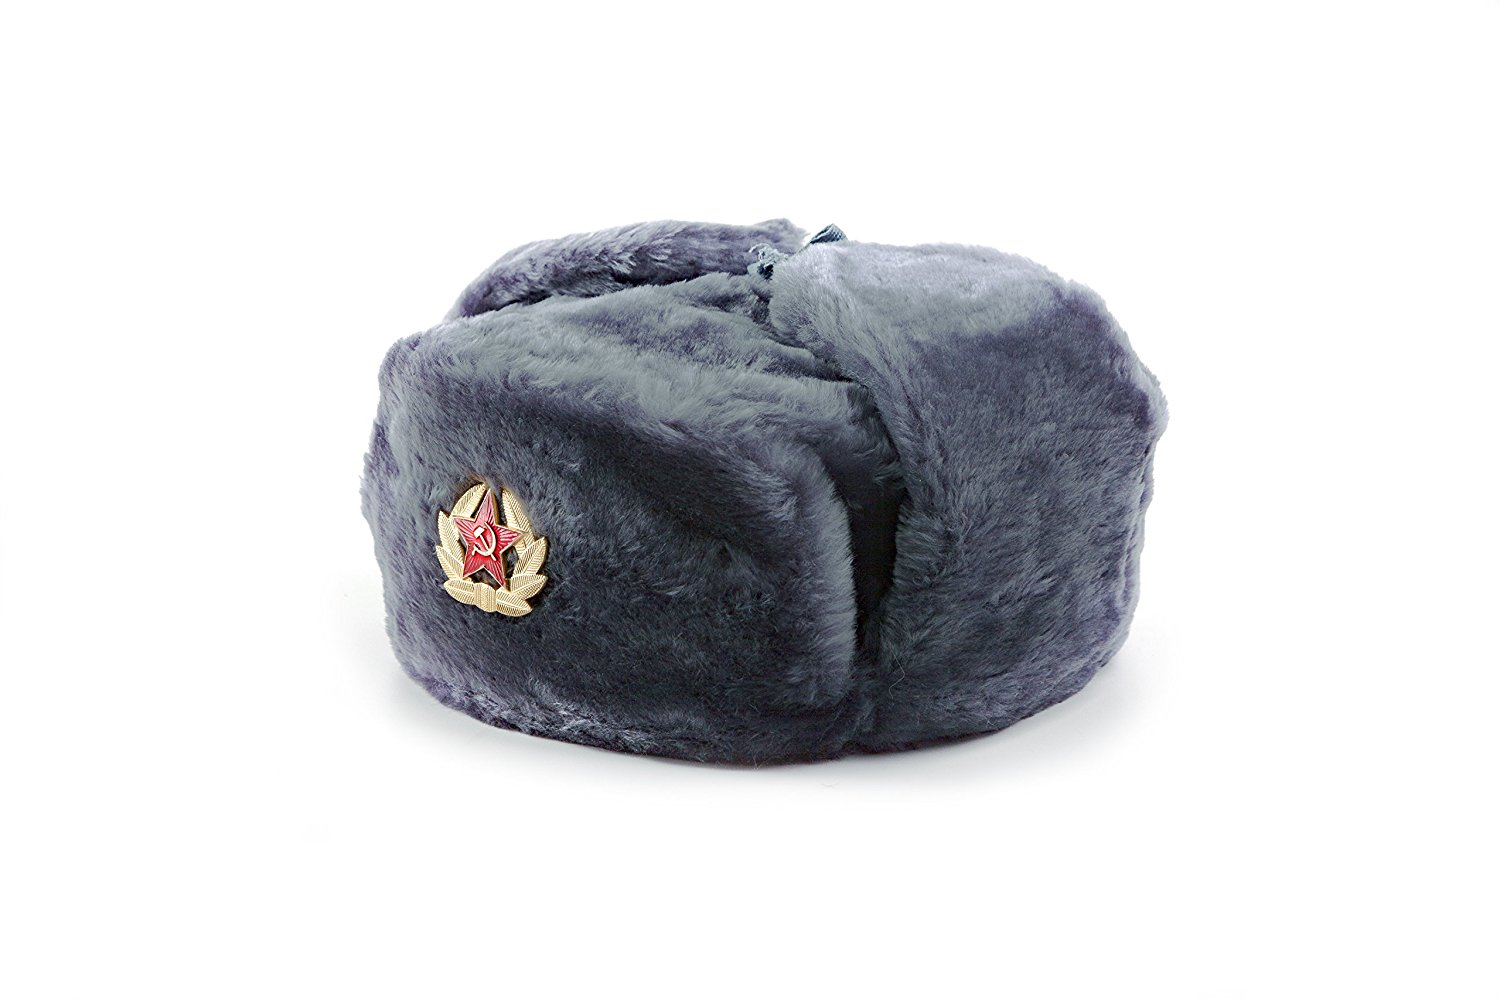 2738334b82a3f Get Quotations · Authentic Russian Ushanka Fur Hat – Soviet Army Heat  Trapper Winter Hat – Original Military USSR